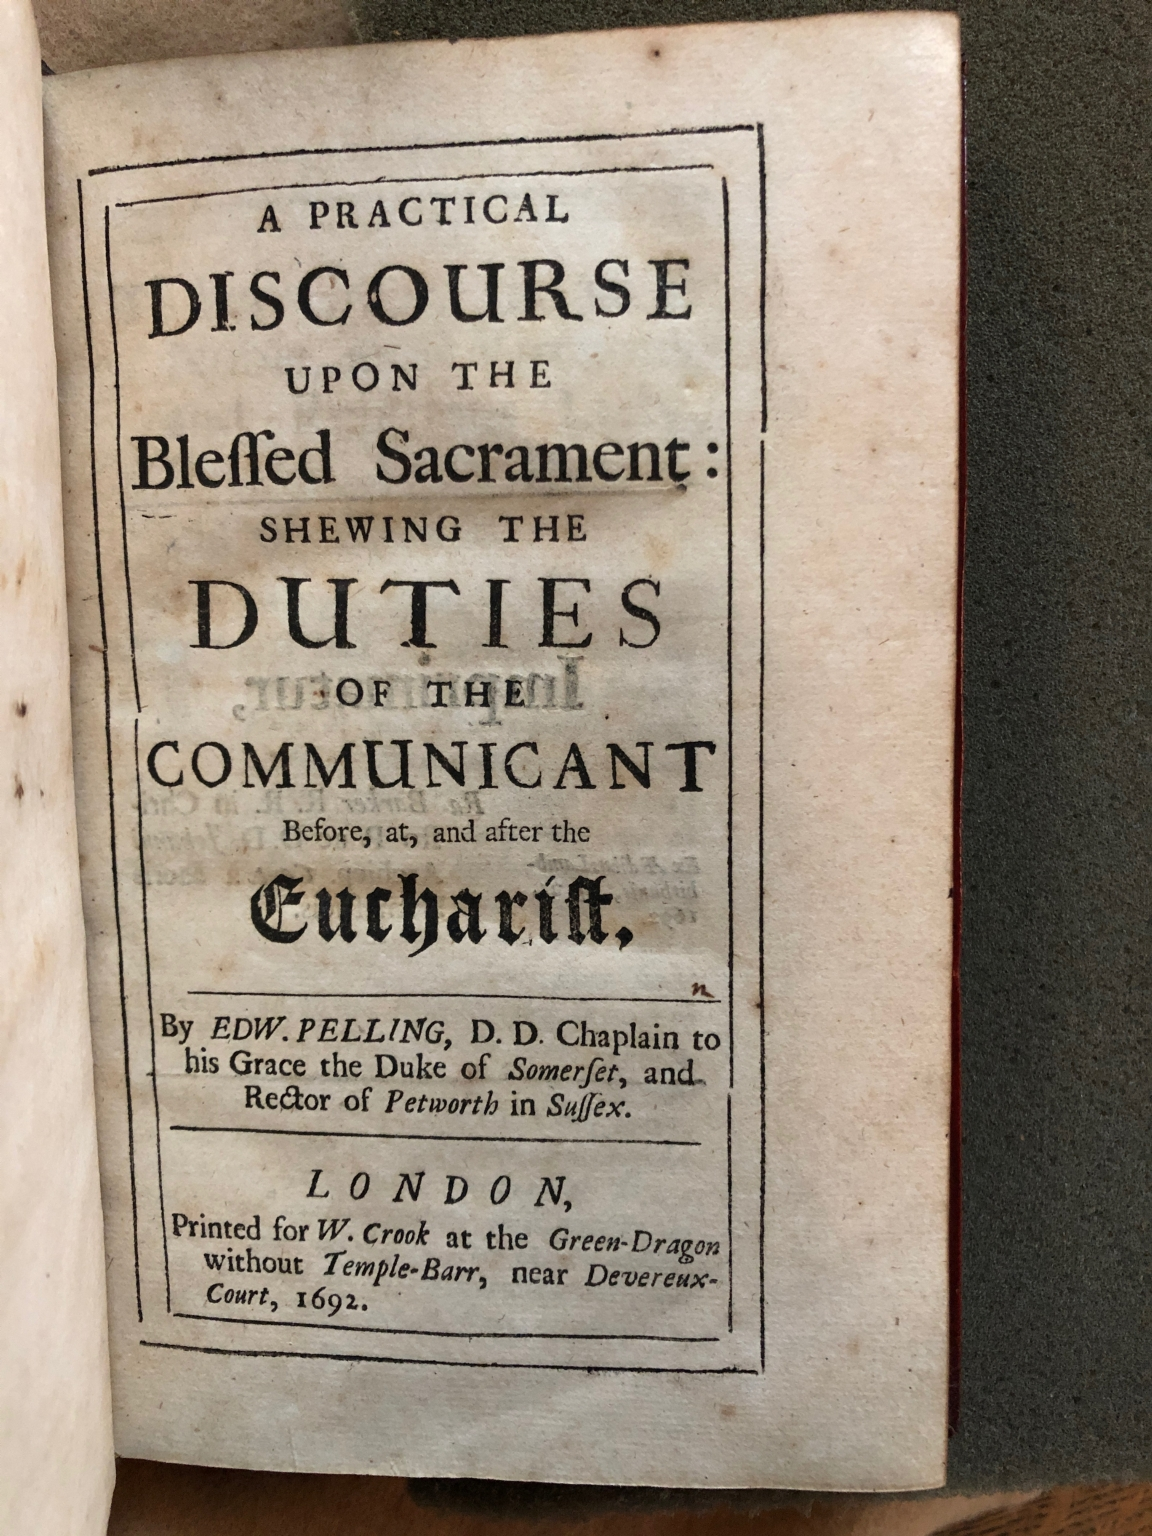 A practical discourse upon the Blessed Sacrament : shewing the duties of the communicant before, at, and after the Eucharist. By Edw. Pelling, D.D. chaplain to his Grace the Duke of Somerset, and rector of Petworth in Sussex.